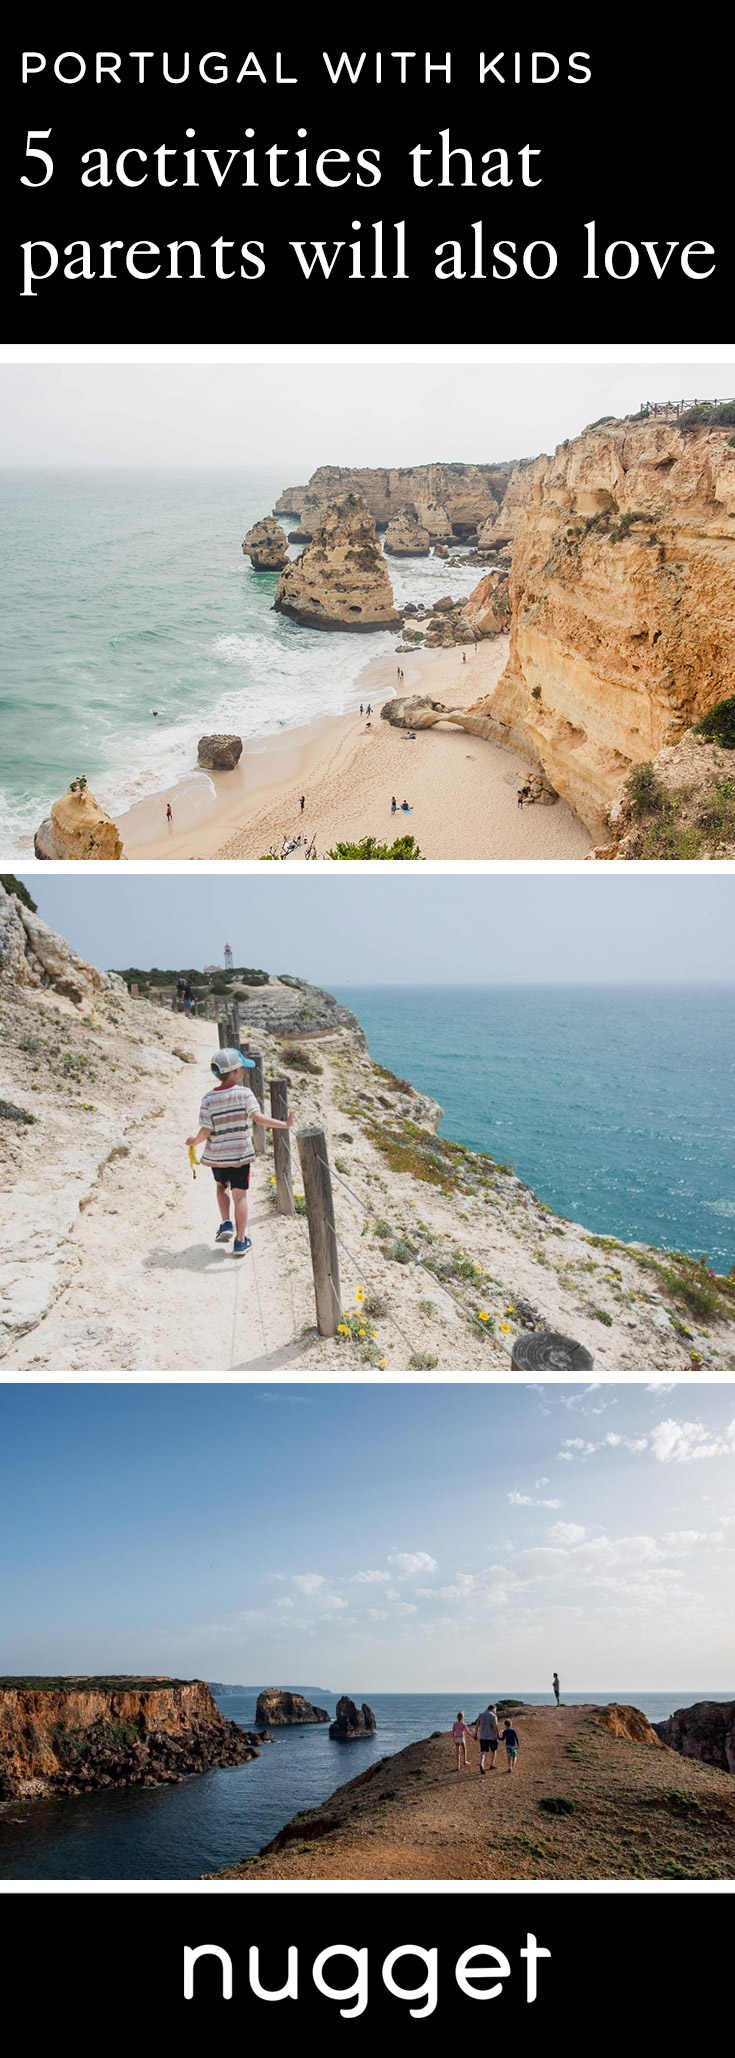 Portugal With Kids: 5 Activities That Parents Will Also Love